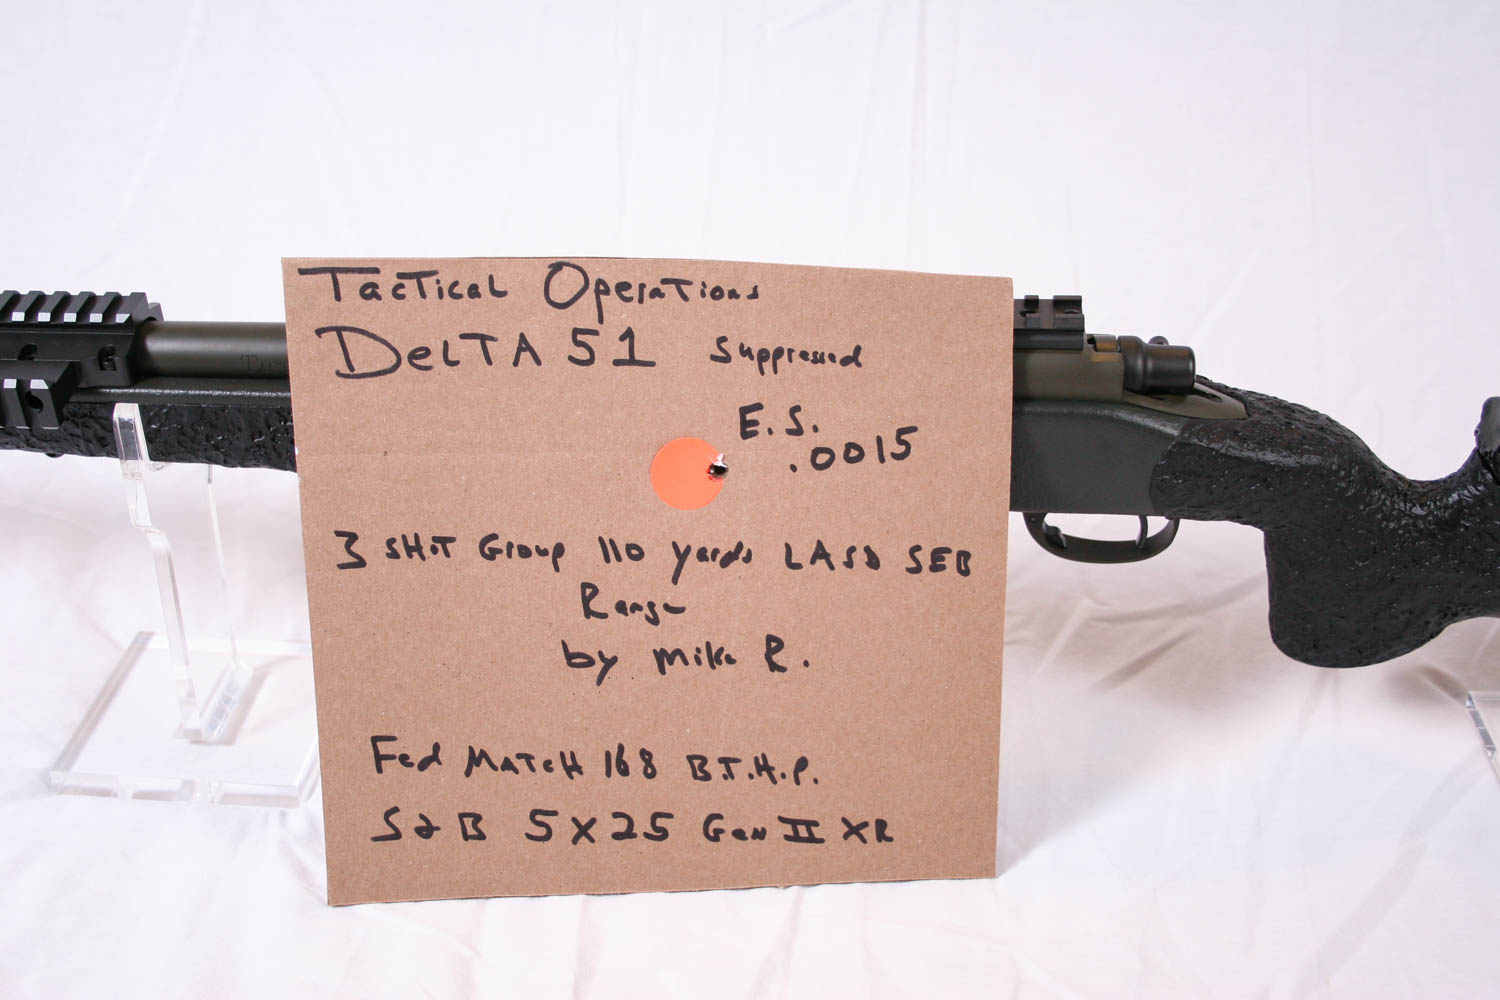 Tactical Operations Delta-51 - Sniper Central